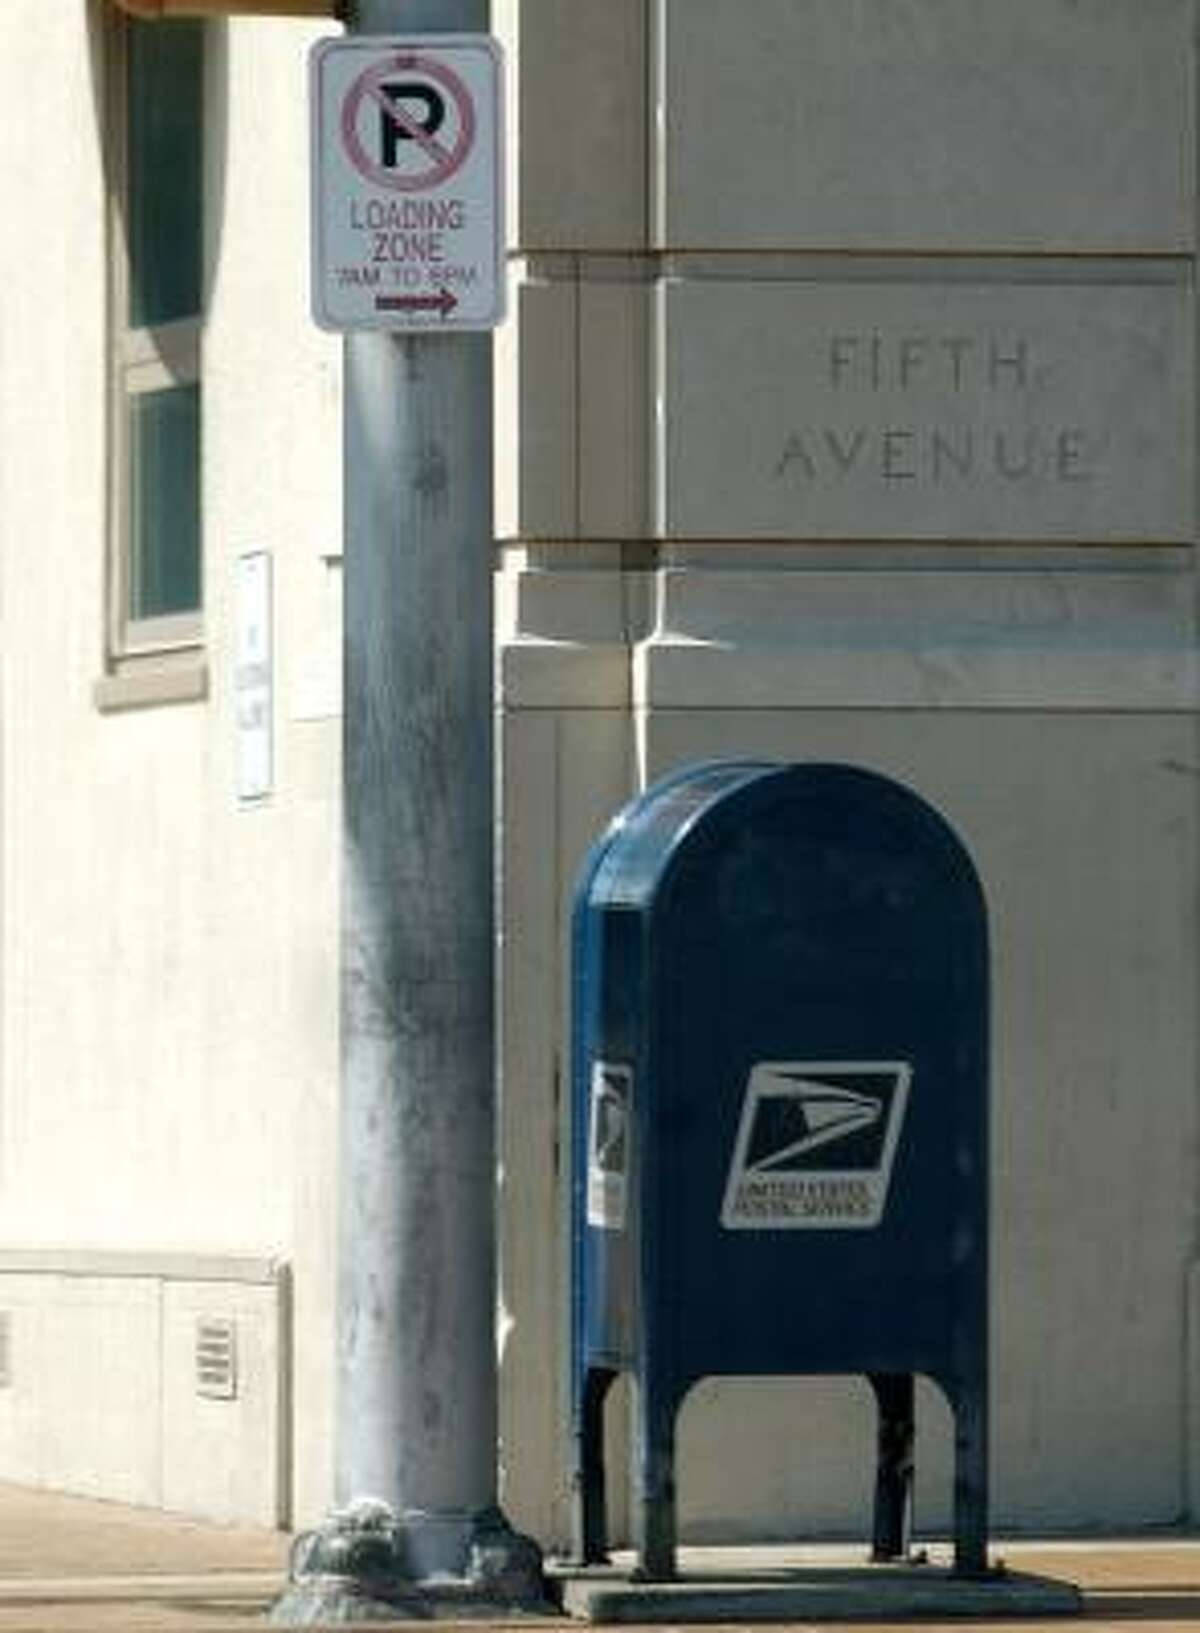 The Postal Service has tried to cut costs by pulling the familiar blue mailboxes from street corners nationwide.